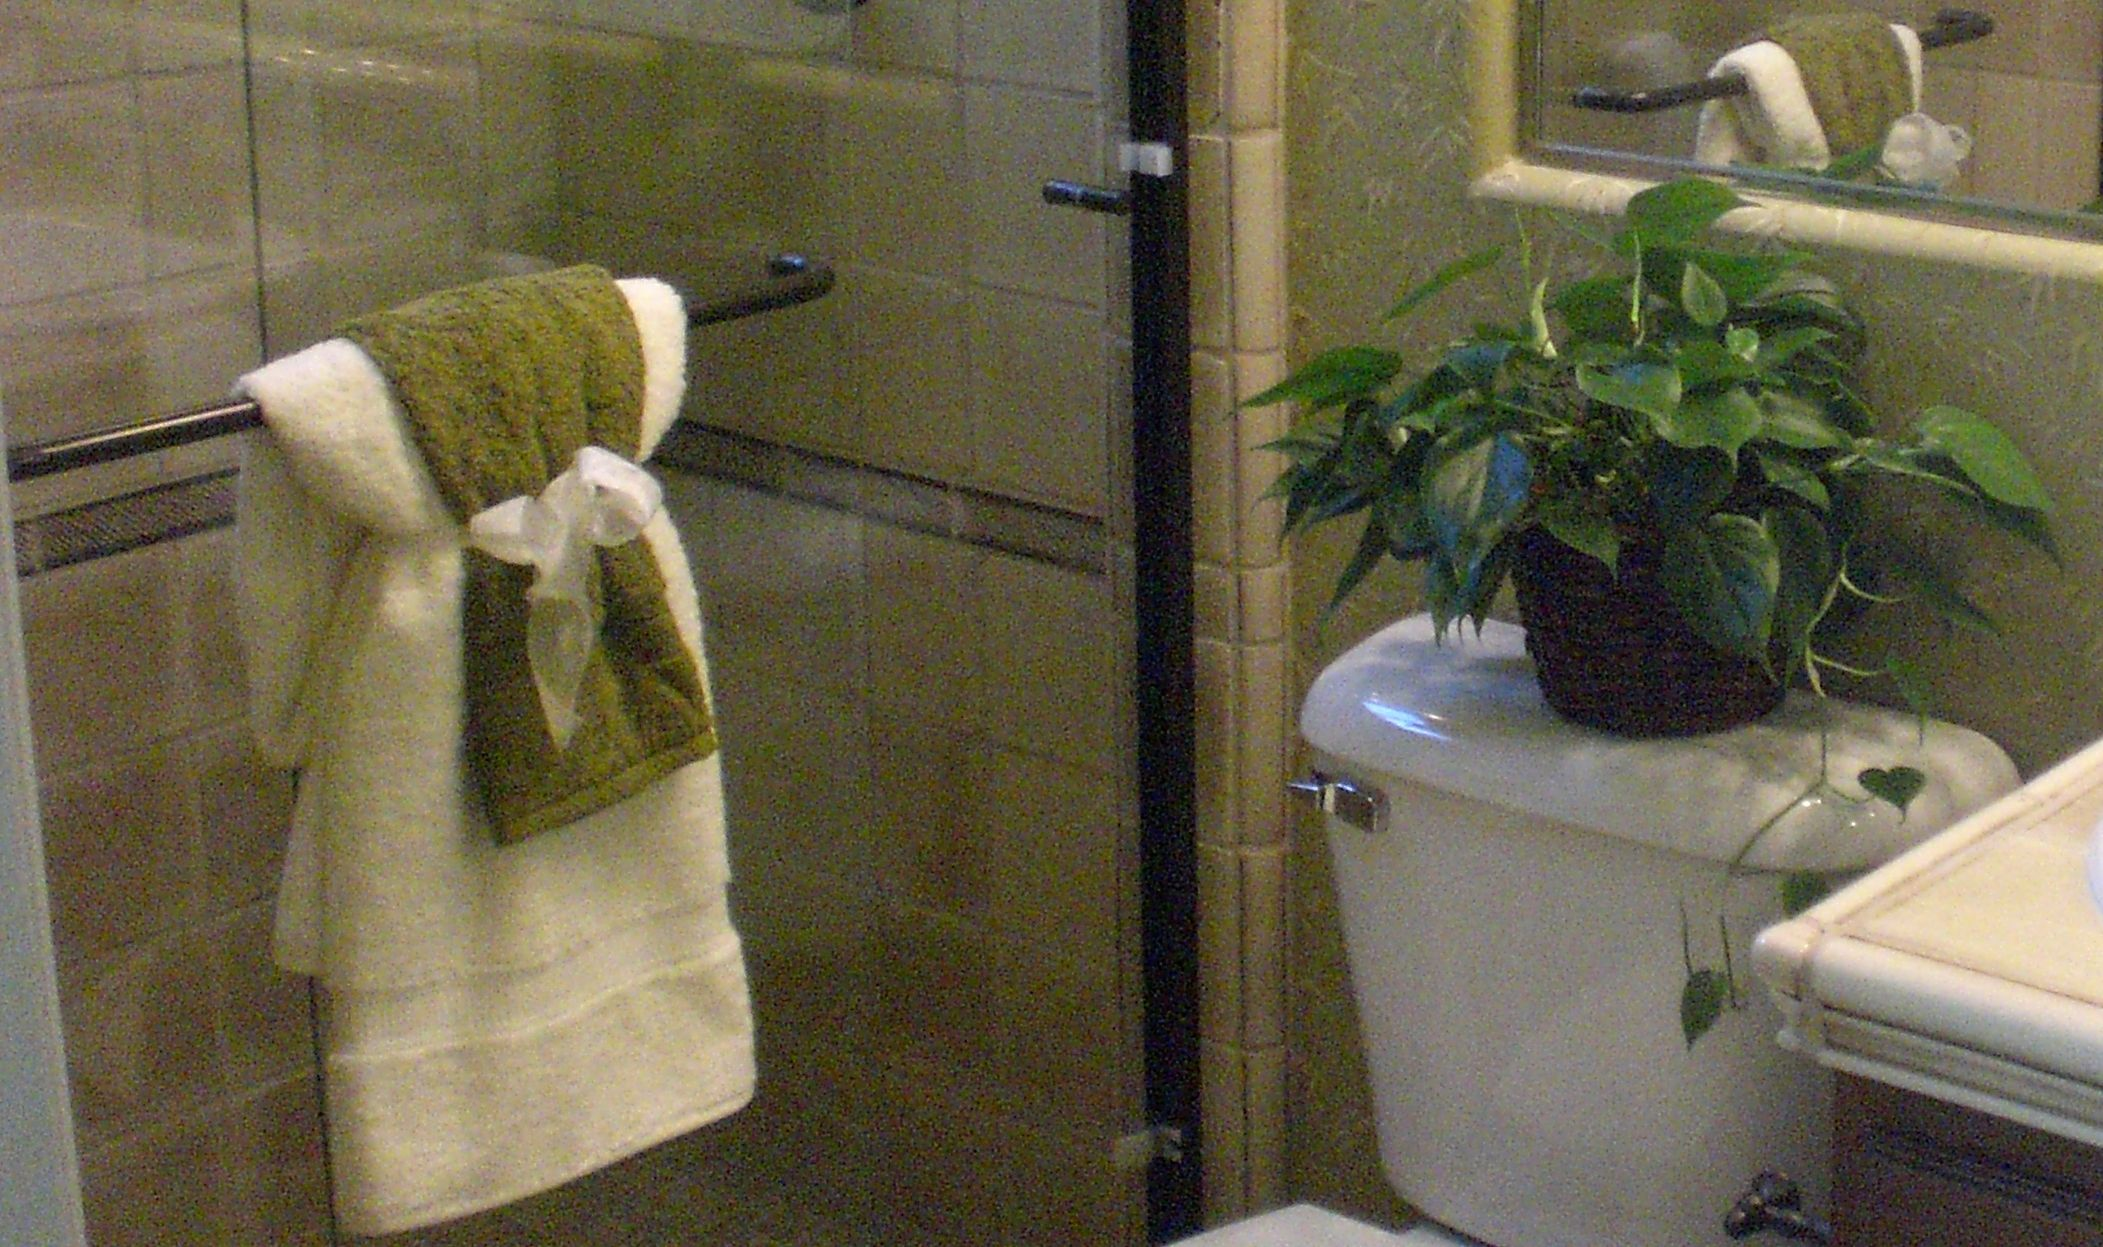 Towel Decorations Everyday Items Towels And Bathroom - Towel decoration ideas for small bathroom ideas